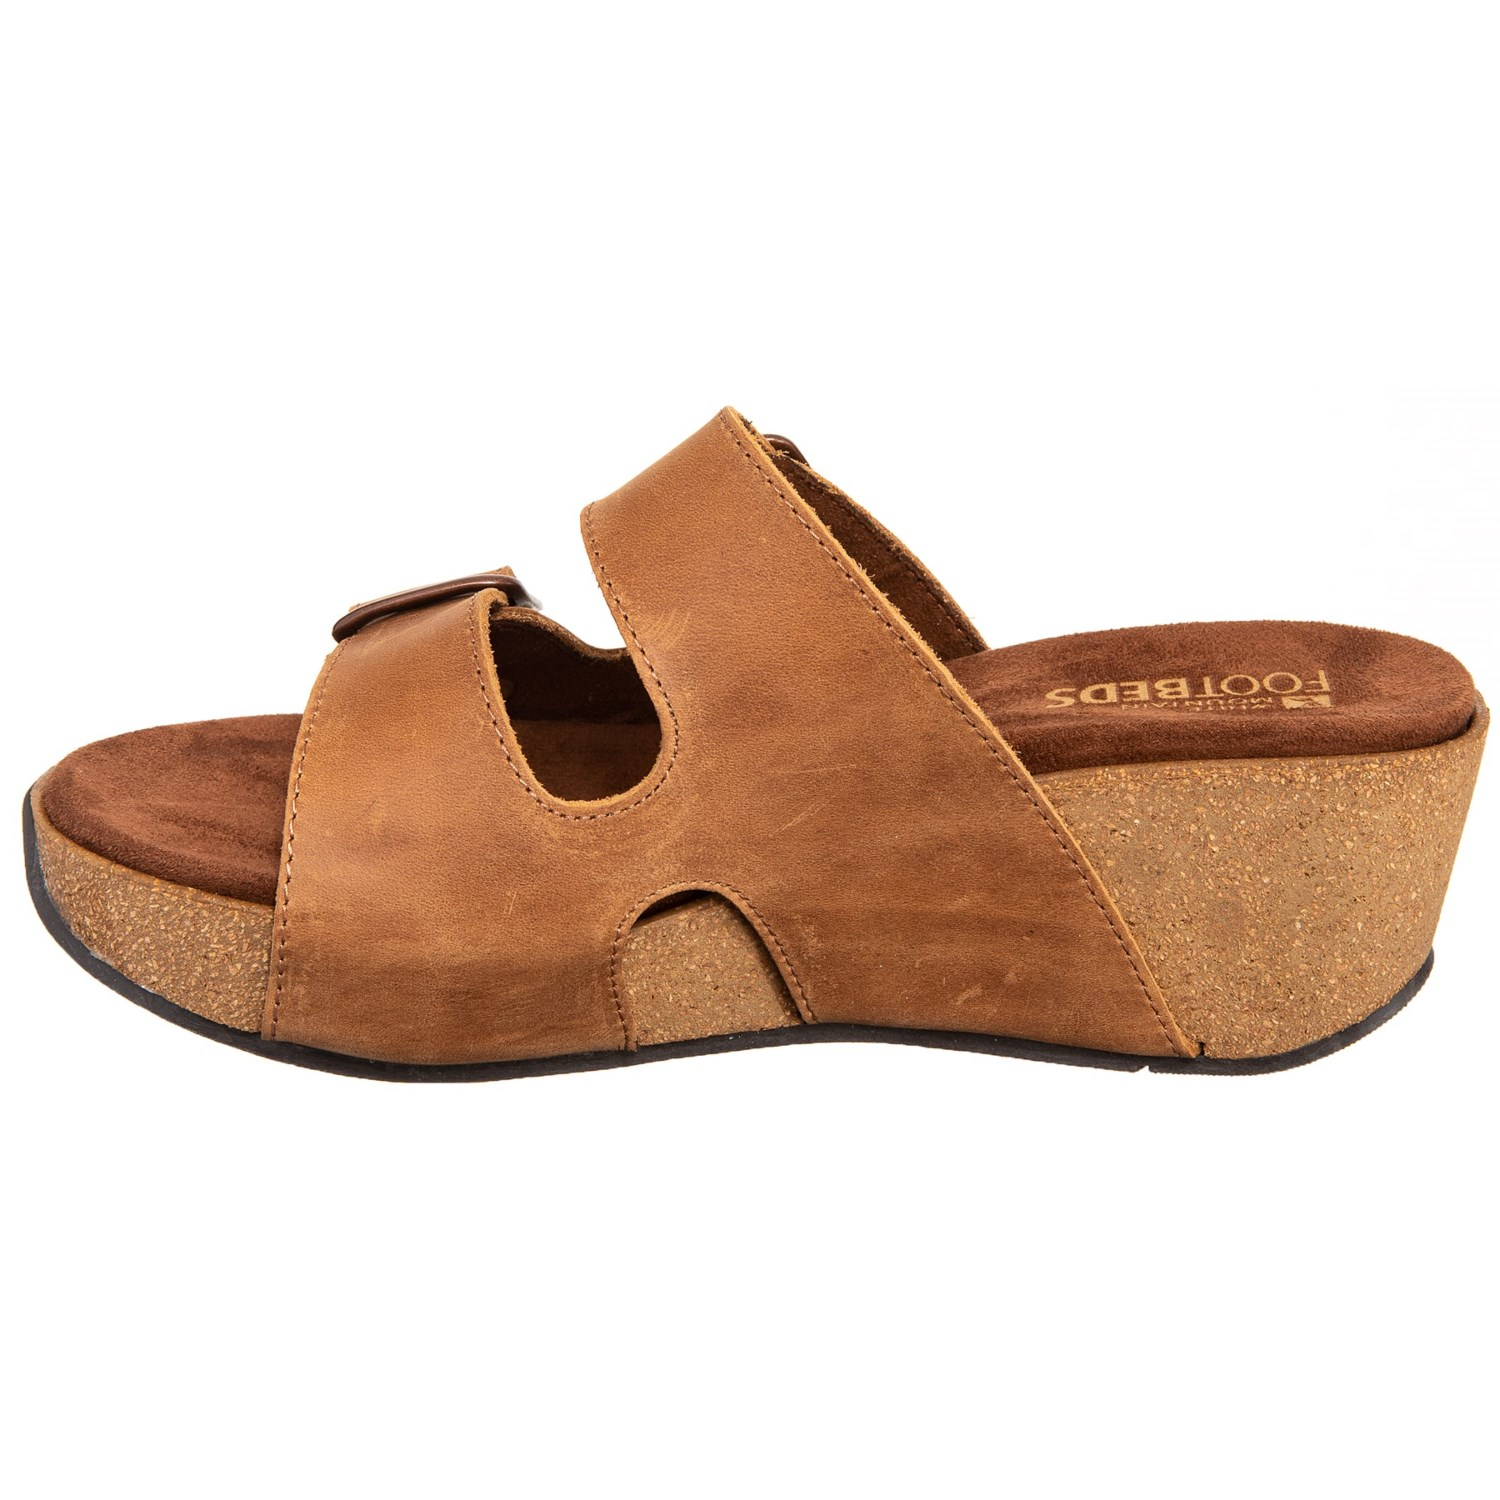 f8cacc486e White Mountain Leather Wedge Sandals (For Women) - Save 45%